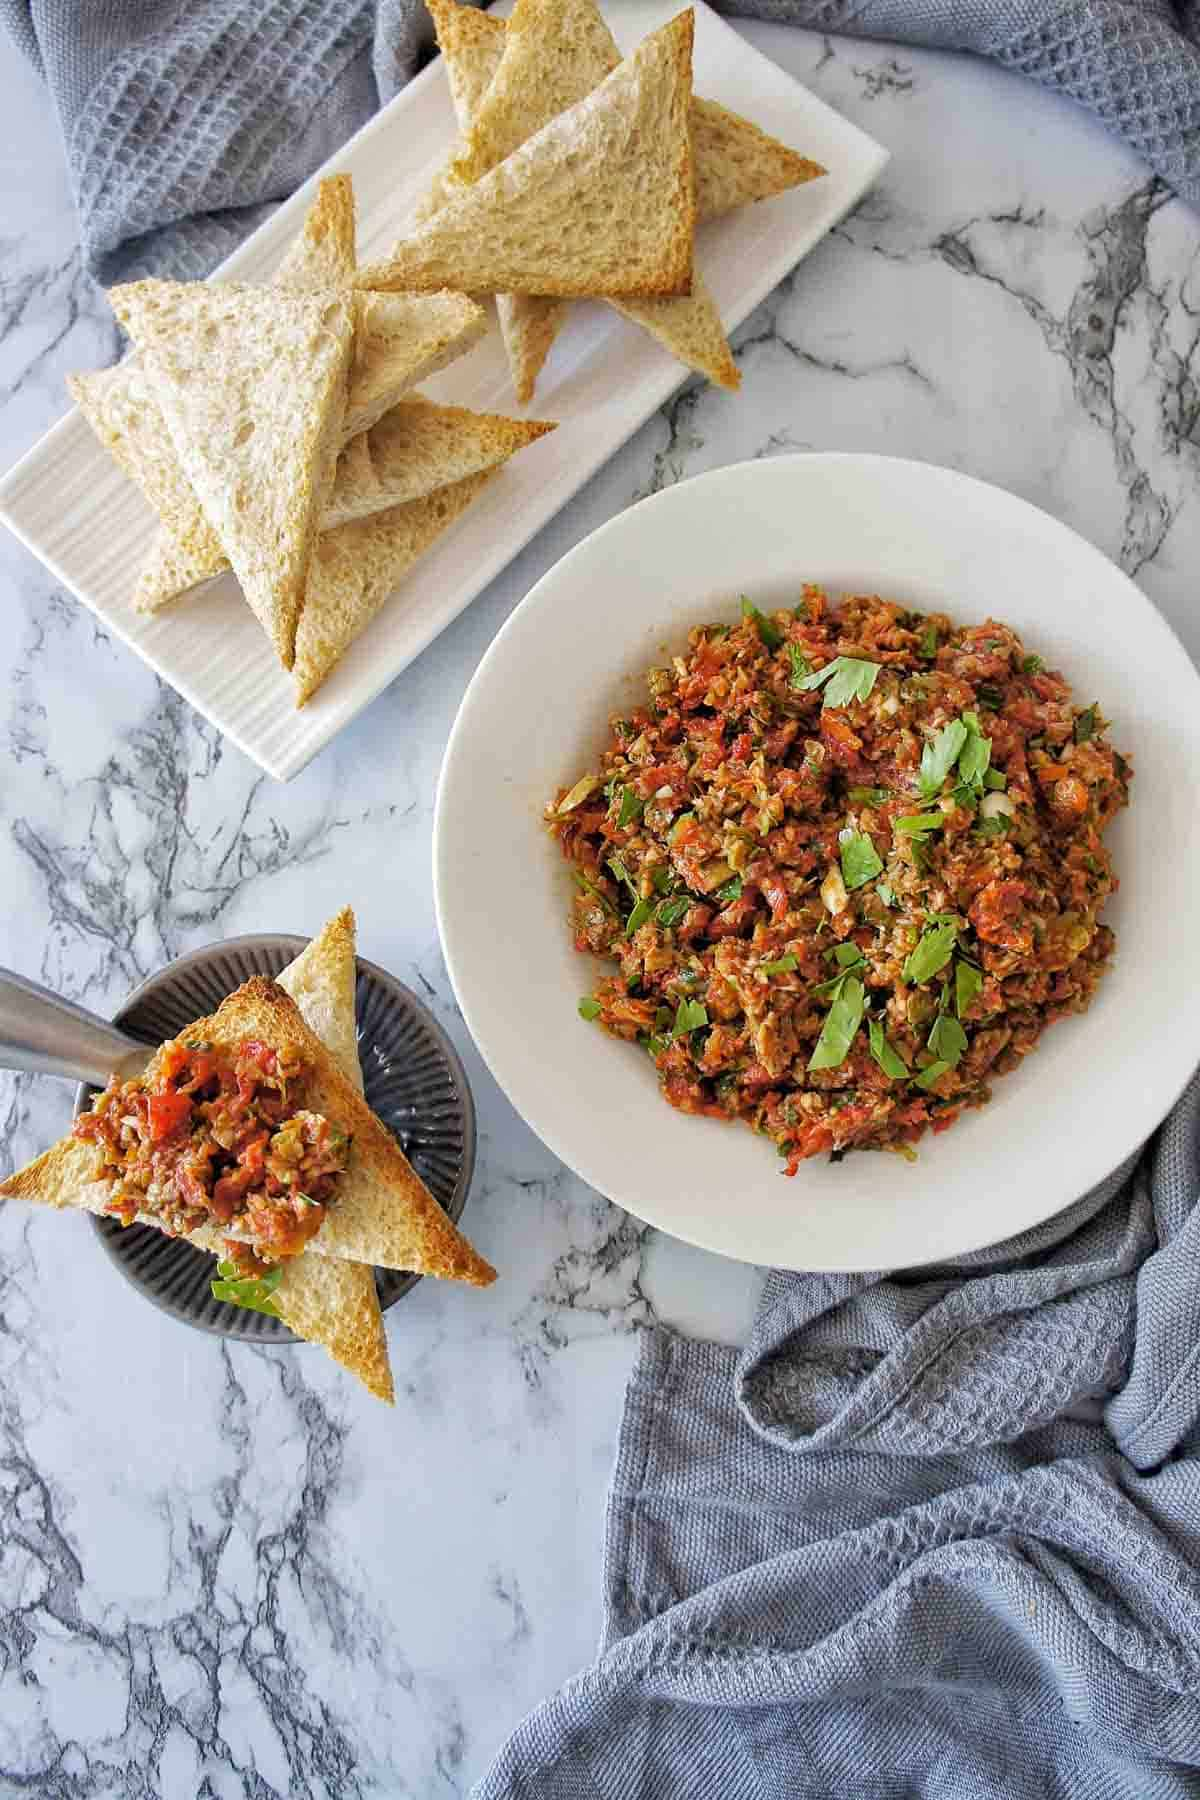 Sun-dried tomato tapenade in a white bowl with toast points to the side and above